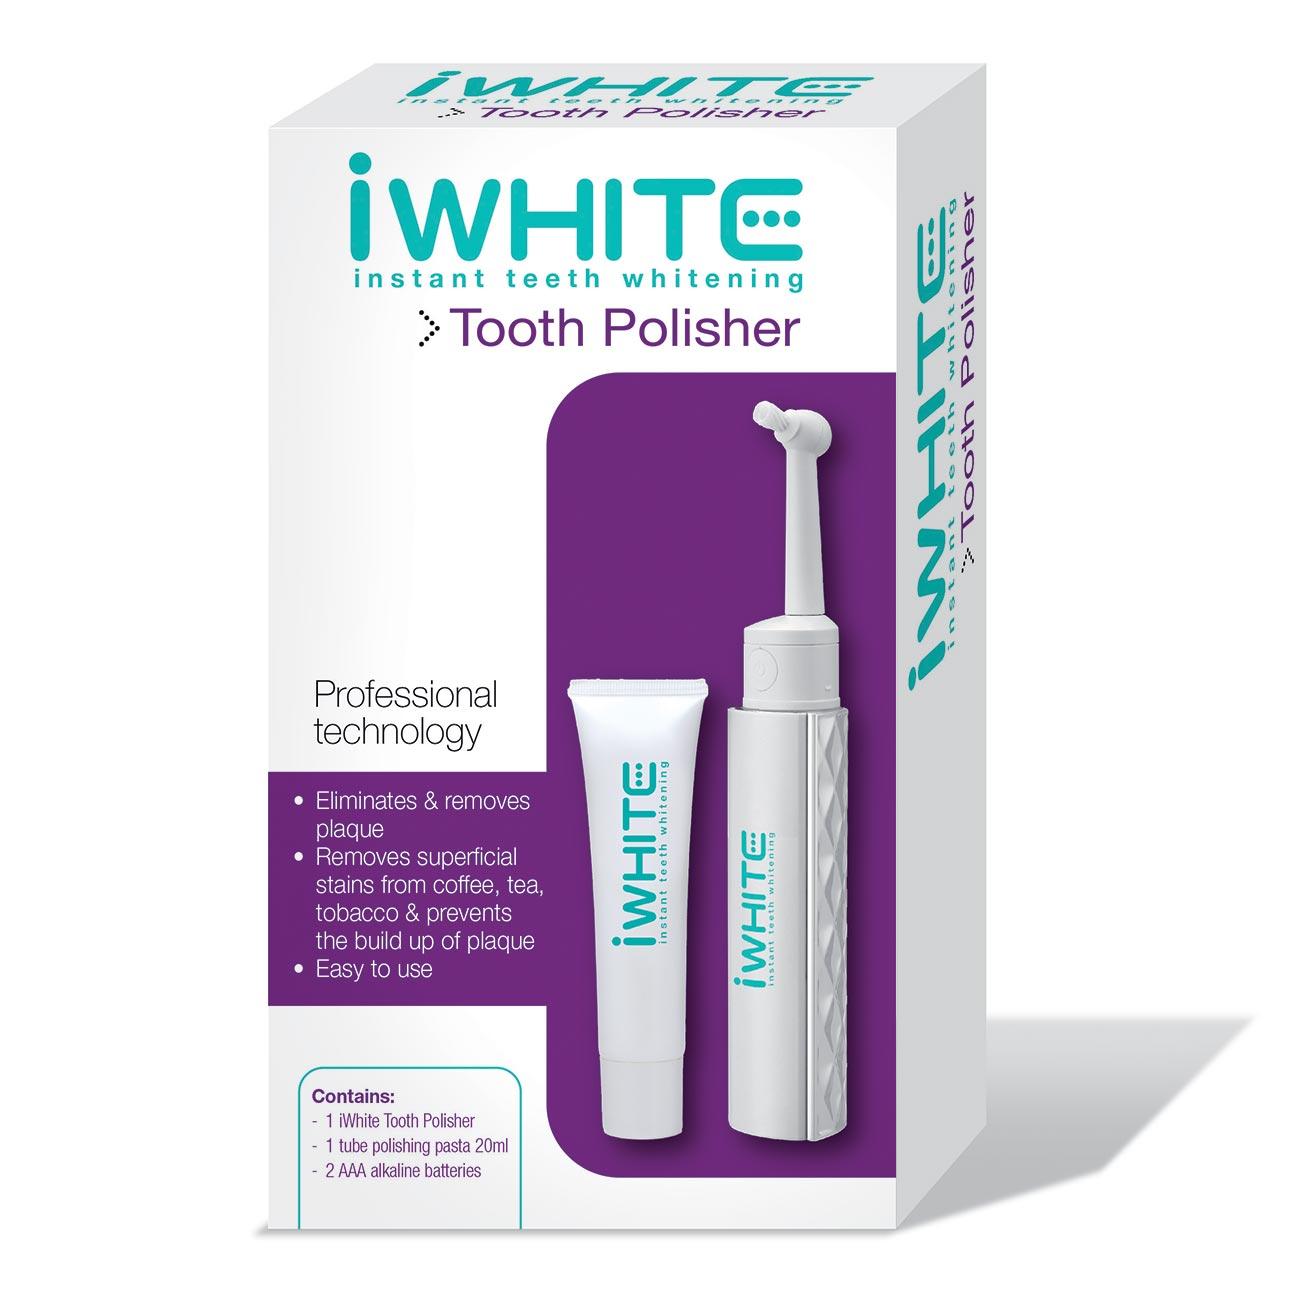 iWhite Instant Teeth Whitening - Tooth Polisher